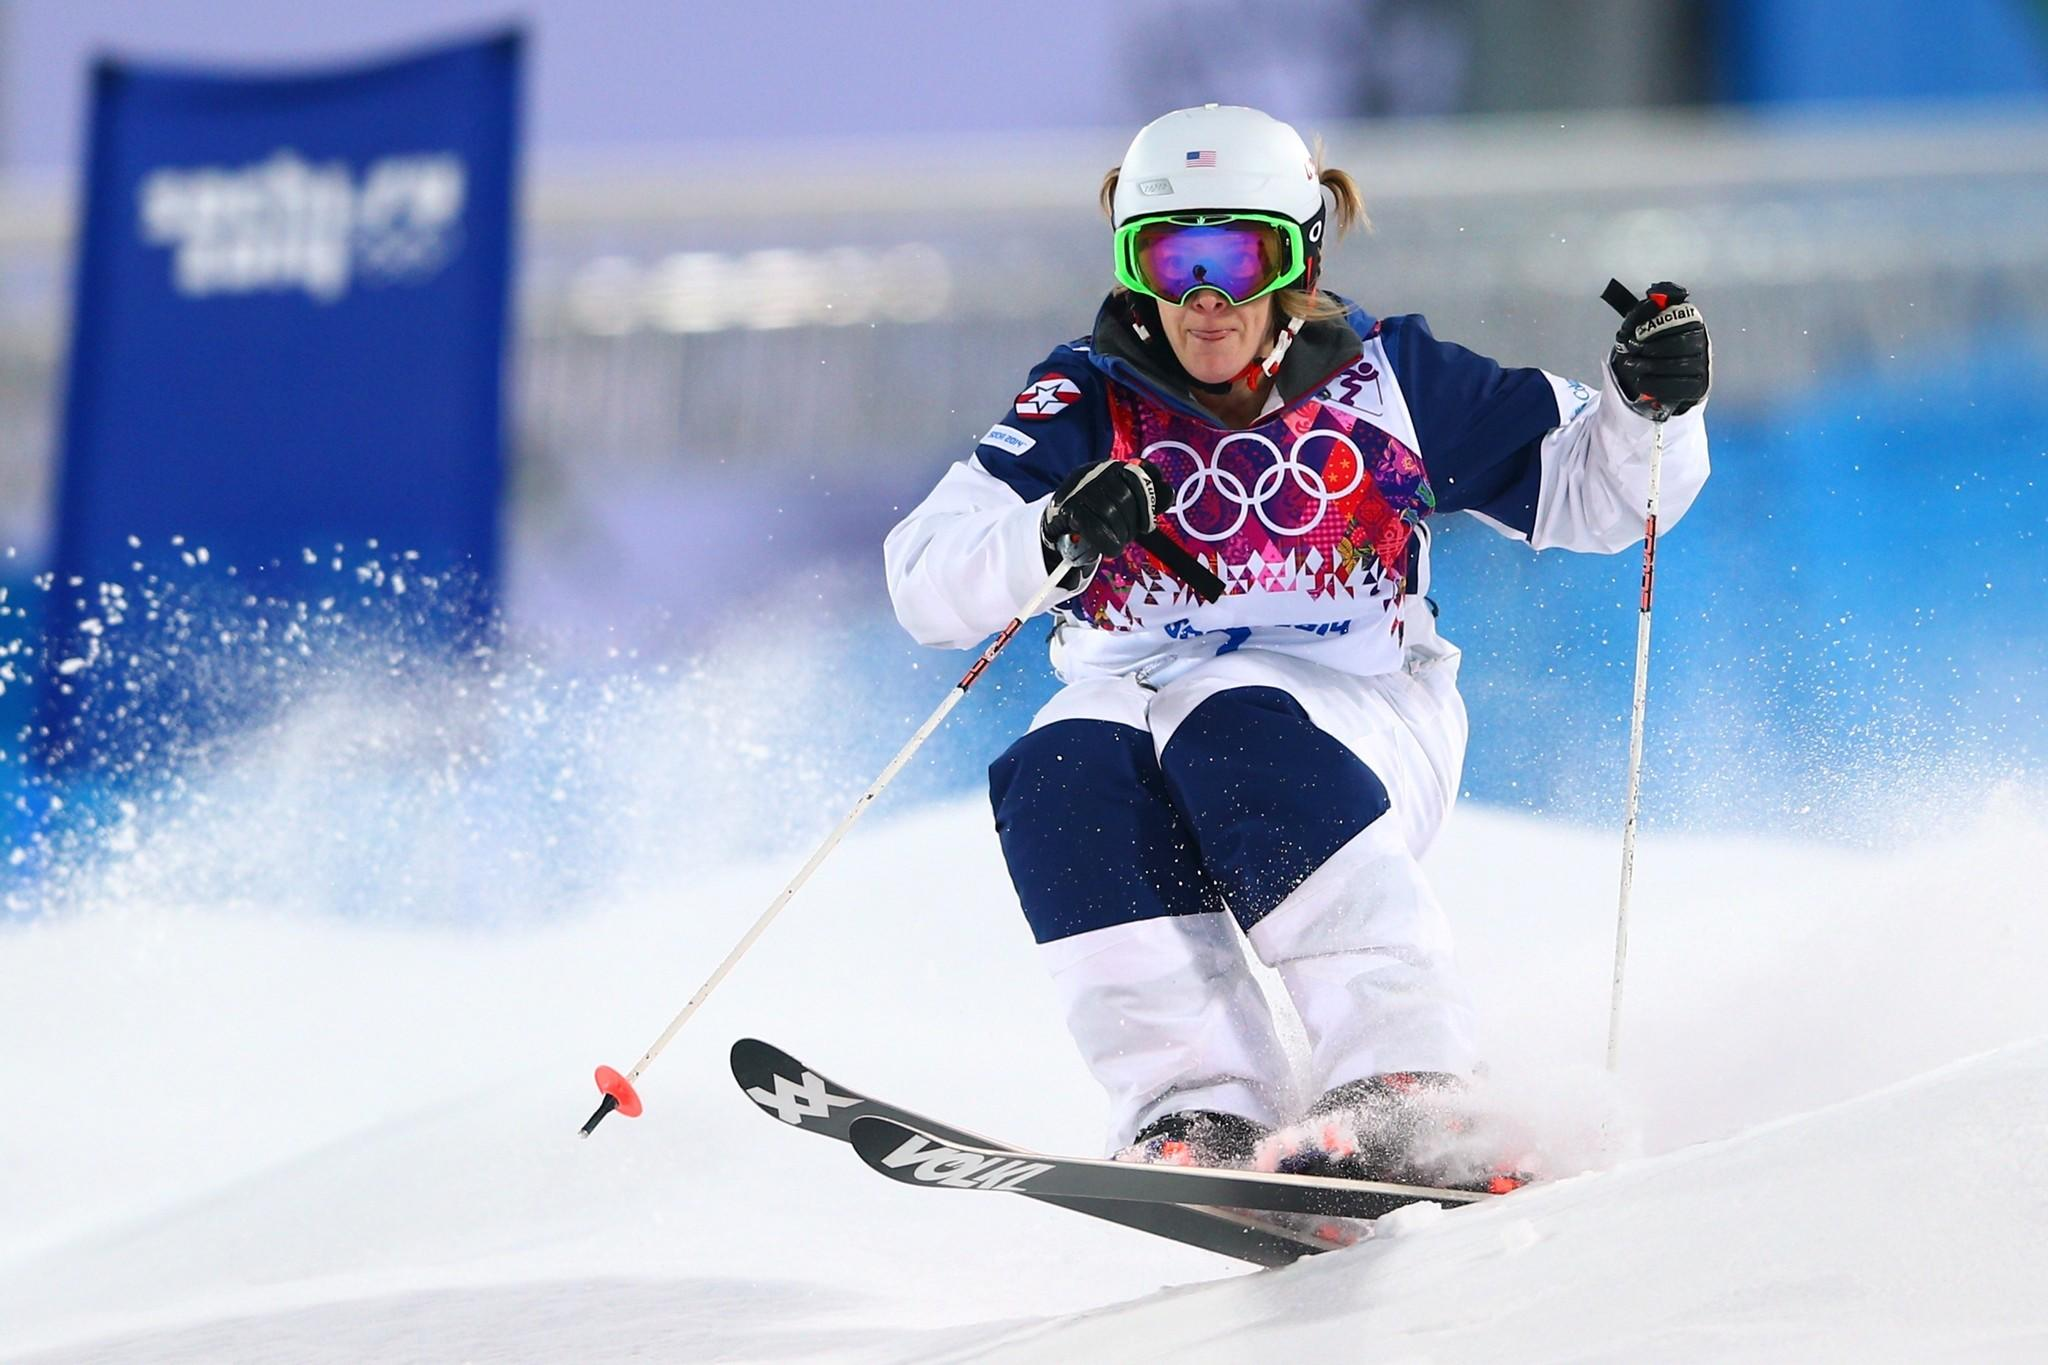 Hannah Kearney competes in the Ladies' Moguls qualifications Thursday at the 2014 Sochi Winter Olympics in Russia.